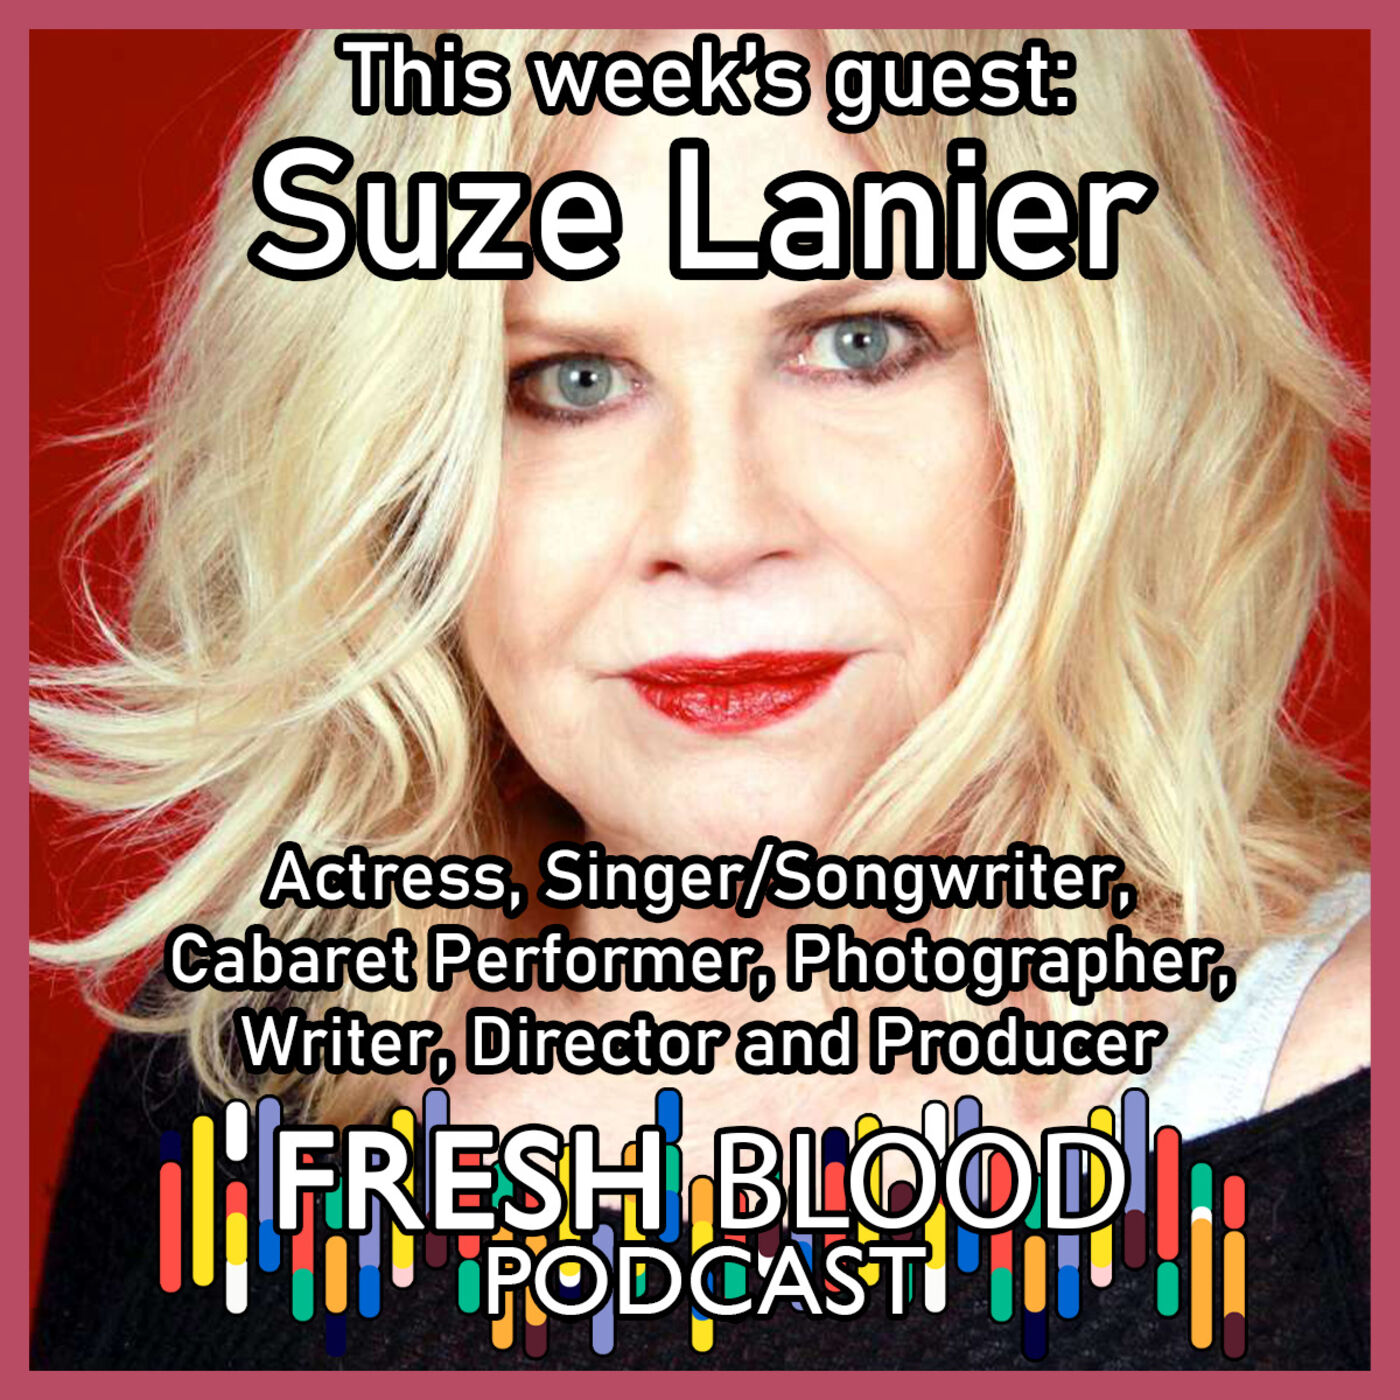 053 - Suze Lanier – Actress, Singer, Songwriter, Cabaret Performer, Photographer, Writer, Director and Producer